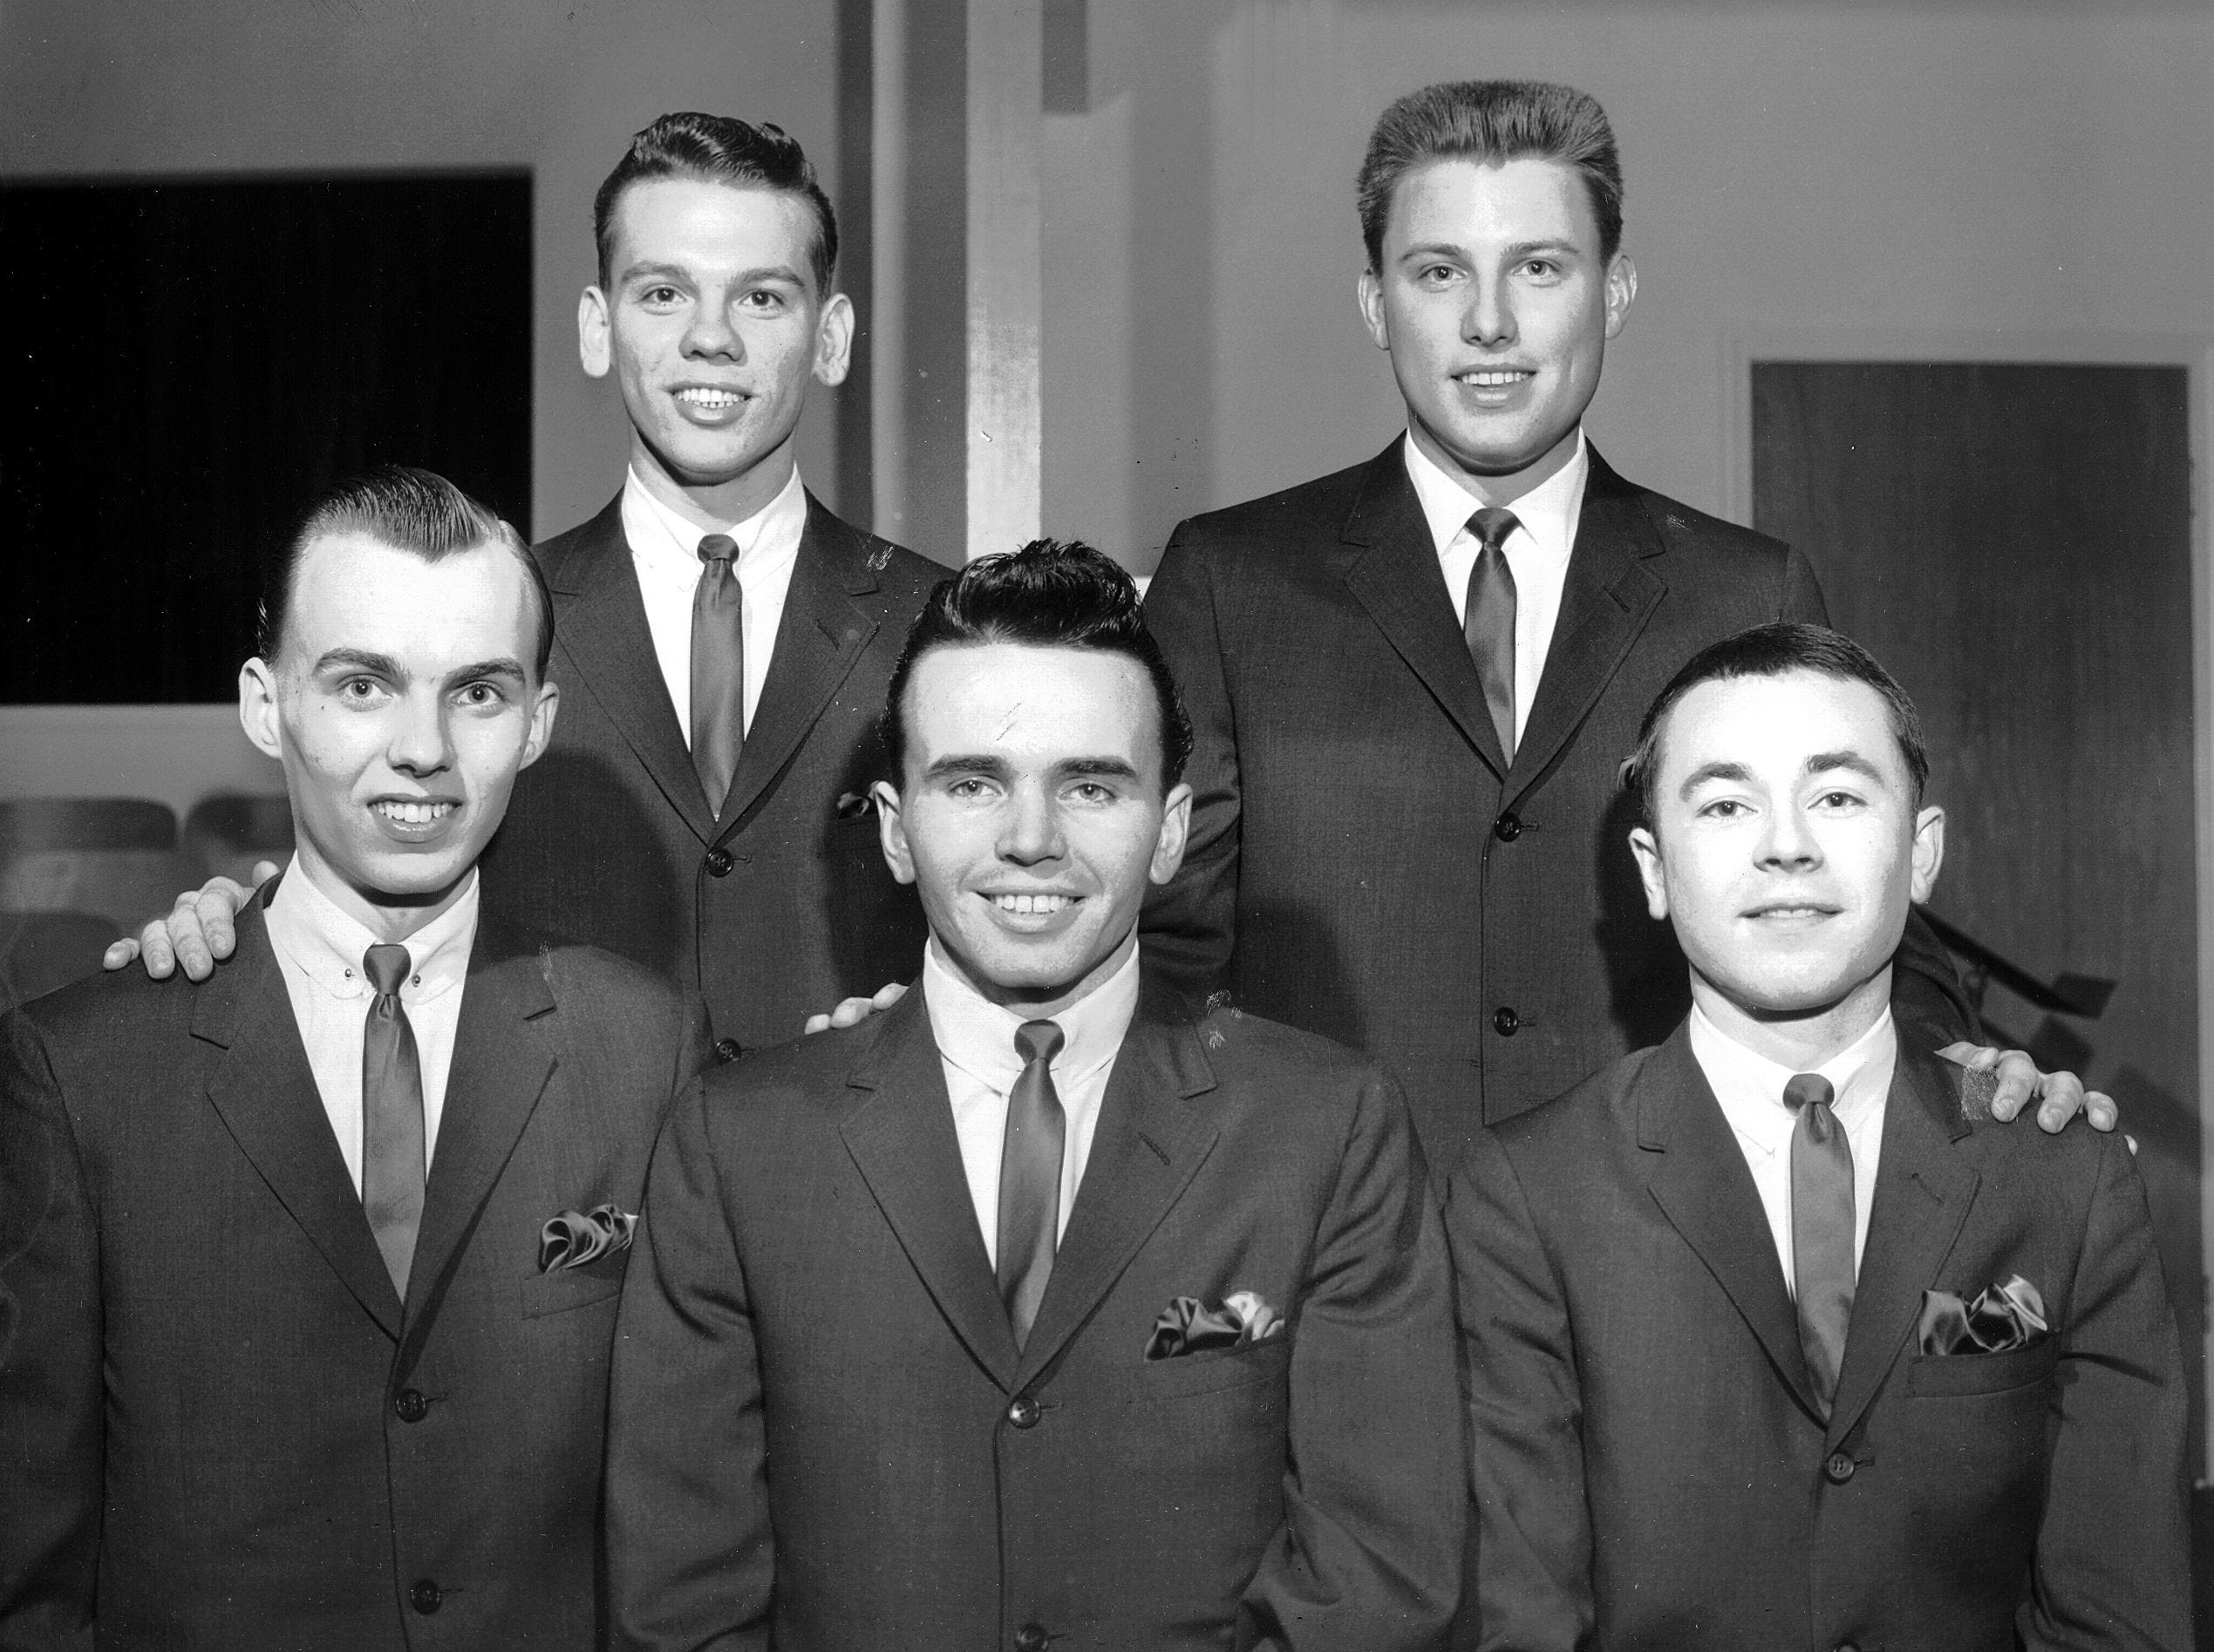 Four young Memphis men were following in the well-known footsteps of their fathers in March 1963. Three of the newly formed group, which calls itself the Blackwood Junior Quartet, are sons of original members of the group who died in a plane crash nearly nine years ago. The group includes from left (front row) James Blackwood Jr., Ronald Blackwood, Winston Blackwood and (back row) Everett Reece, pianist, and Bill Lyles Jr. Lyles is the son of Bill Lyles, bass member of the original group. Ronald and Winston are sons of the late R.W. Blackwood, who was the famed baritone.